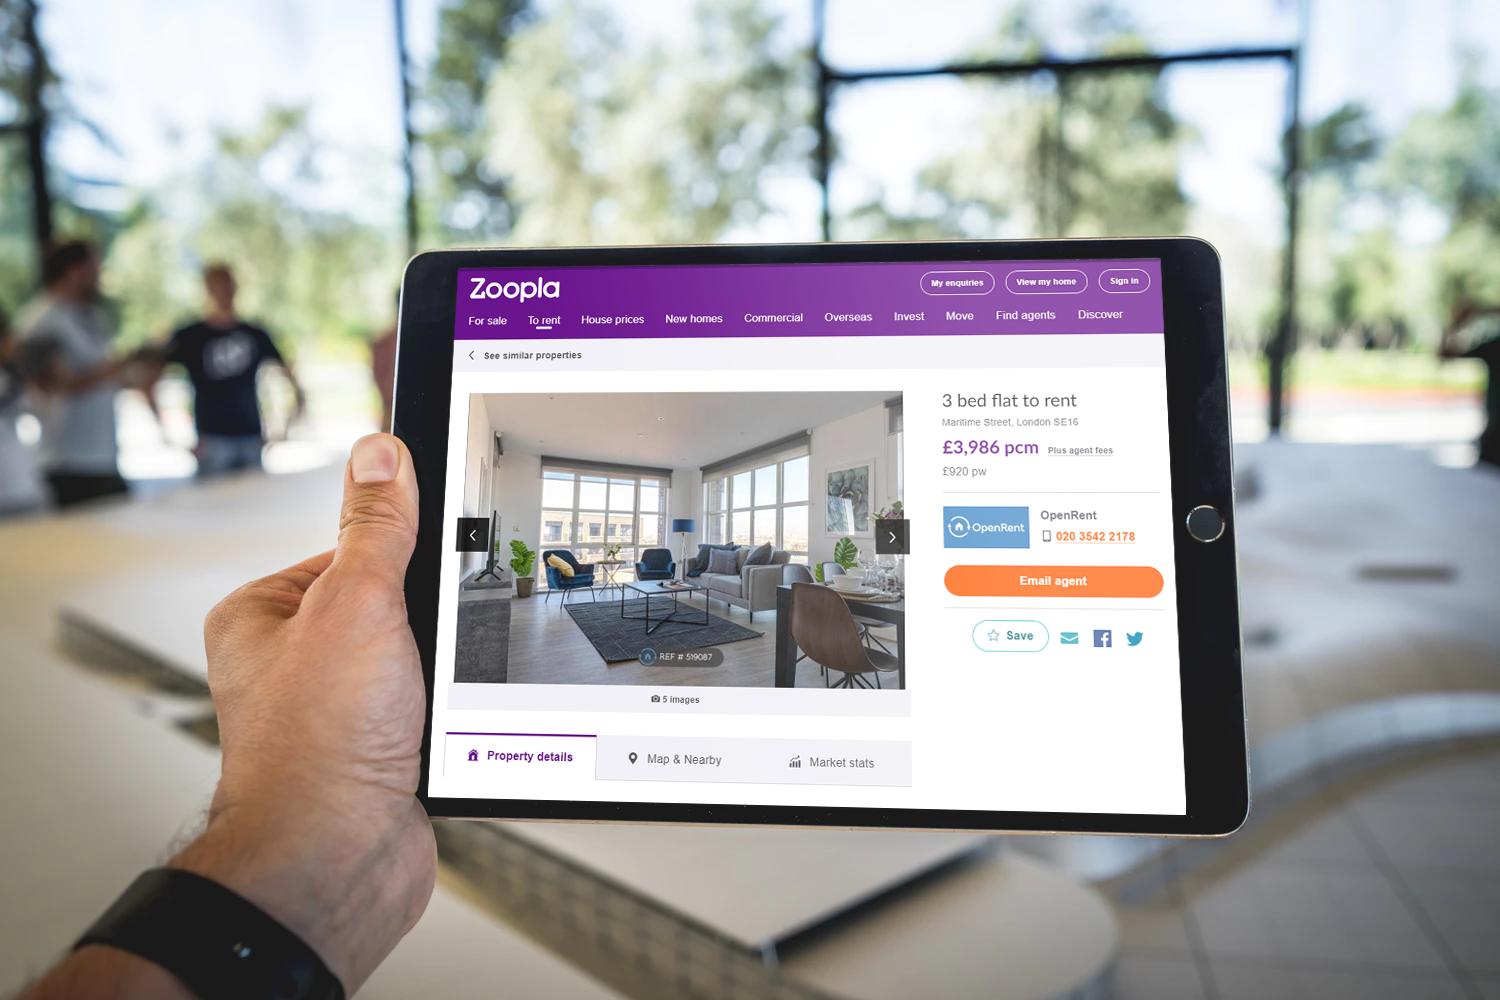 Users browsing OpenRent properties on Rightmove on a tablet device